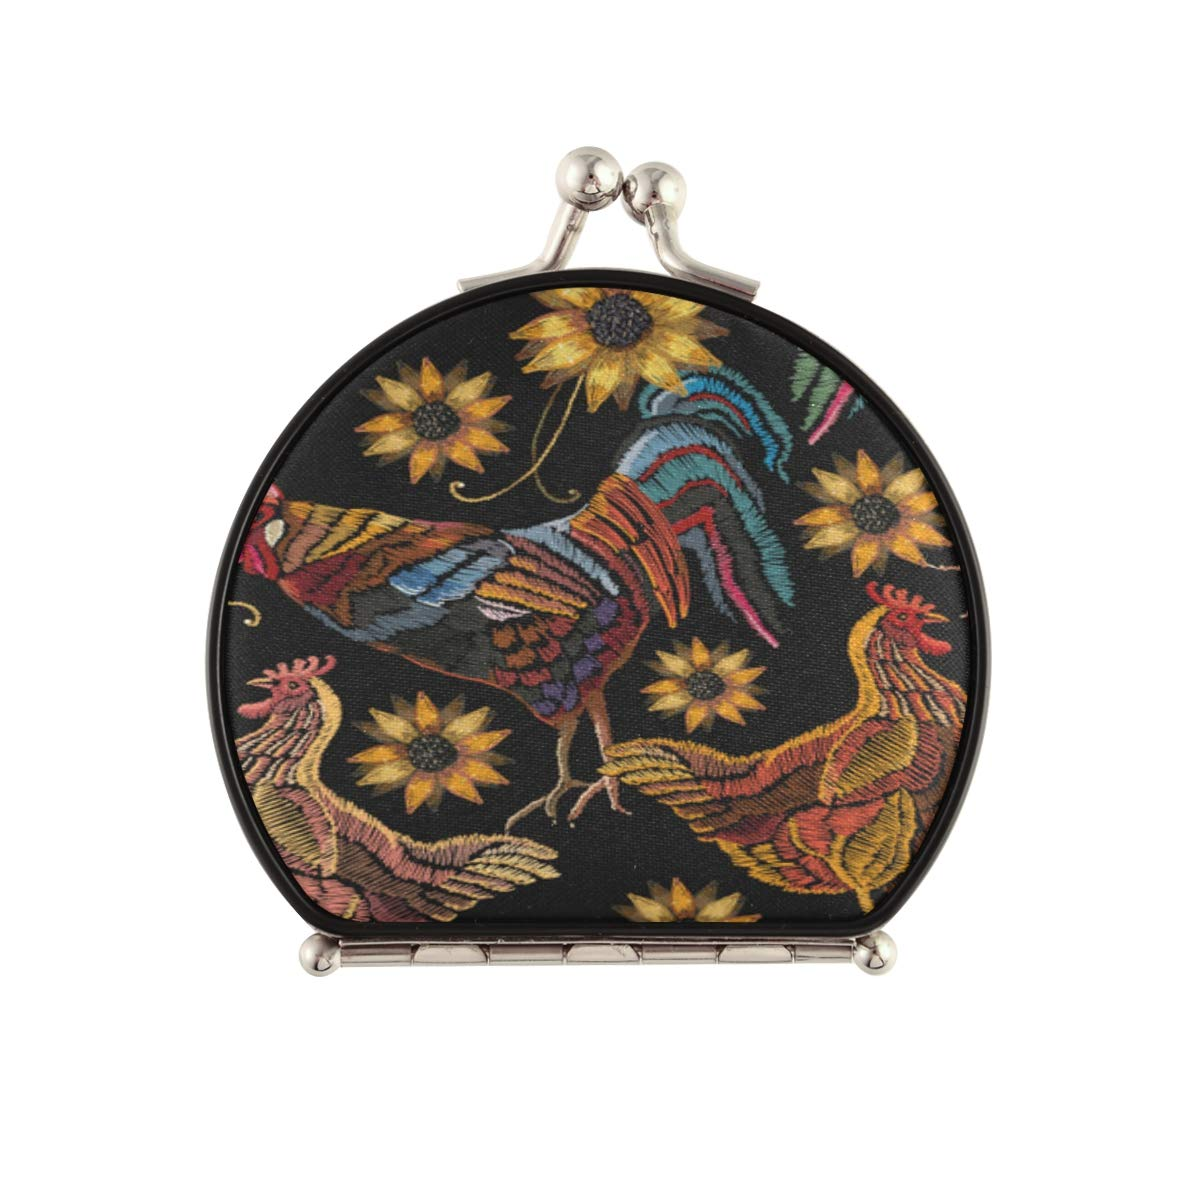 Magnifying Compact Cosmetic Mirror Rooster Chicken Time sale Sale Special Price Su Embroidery